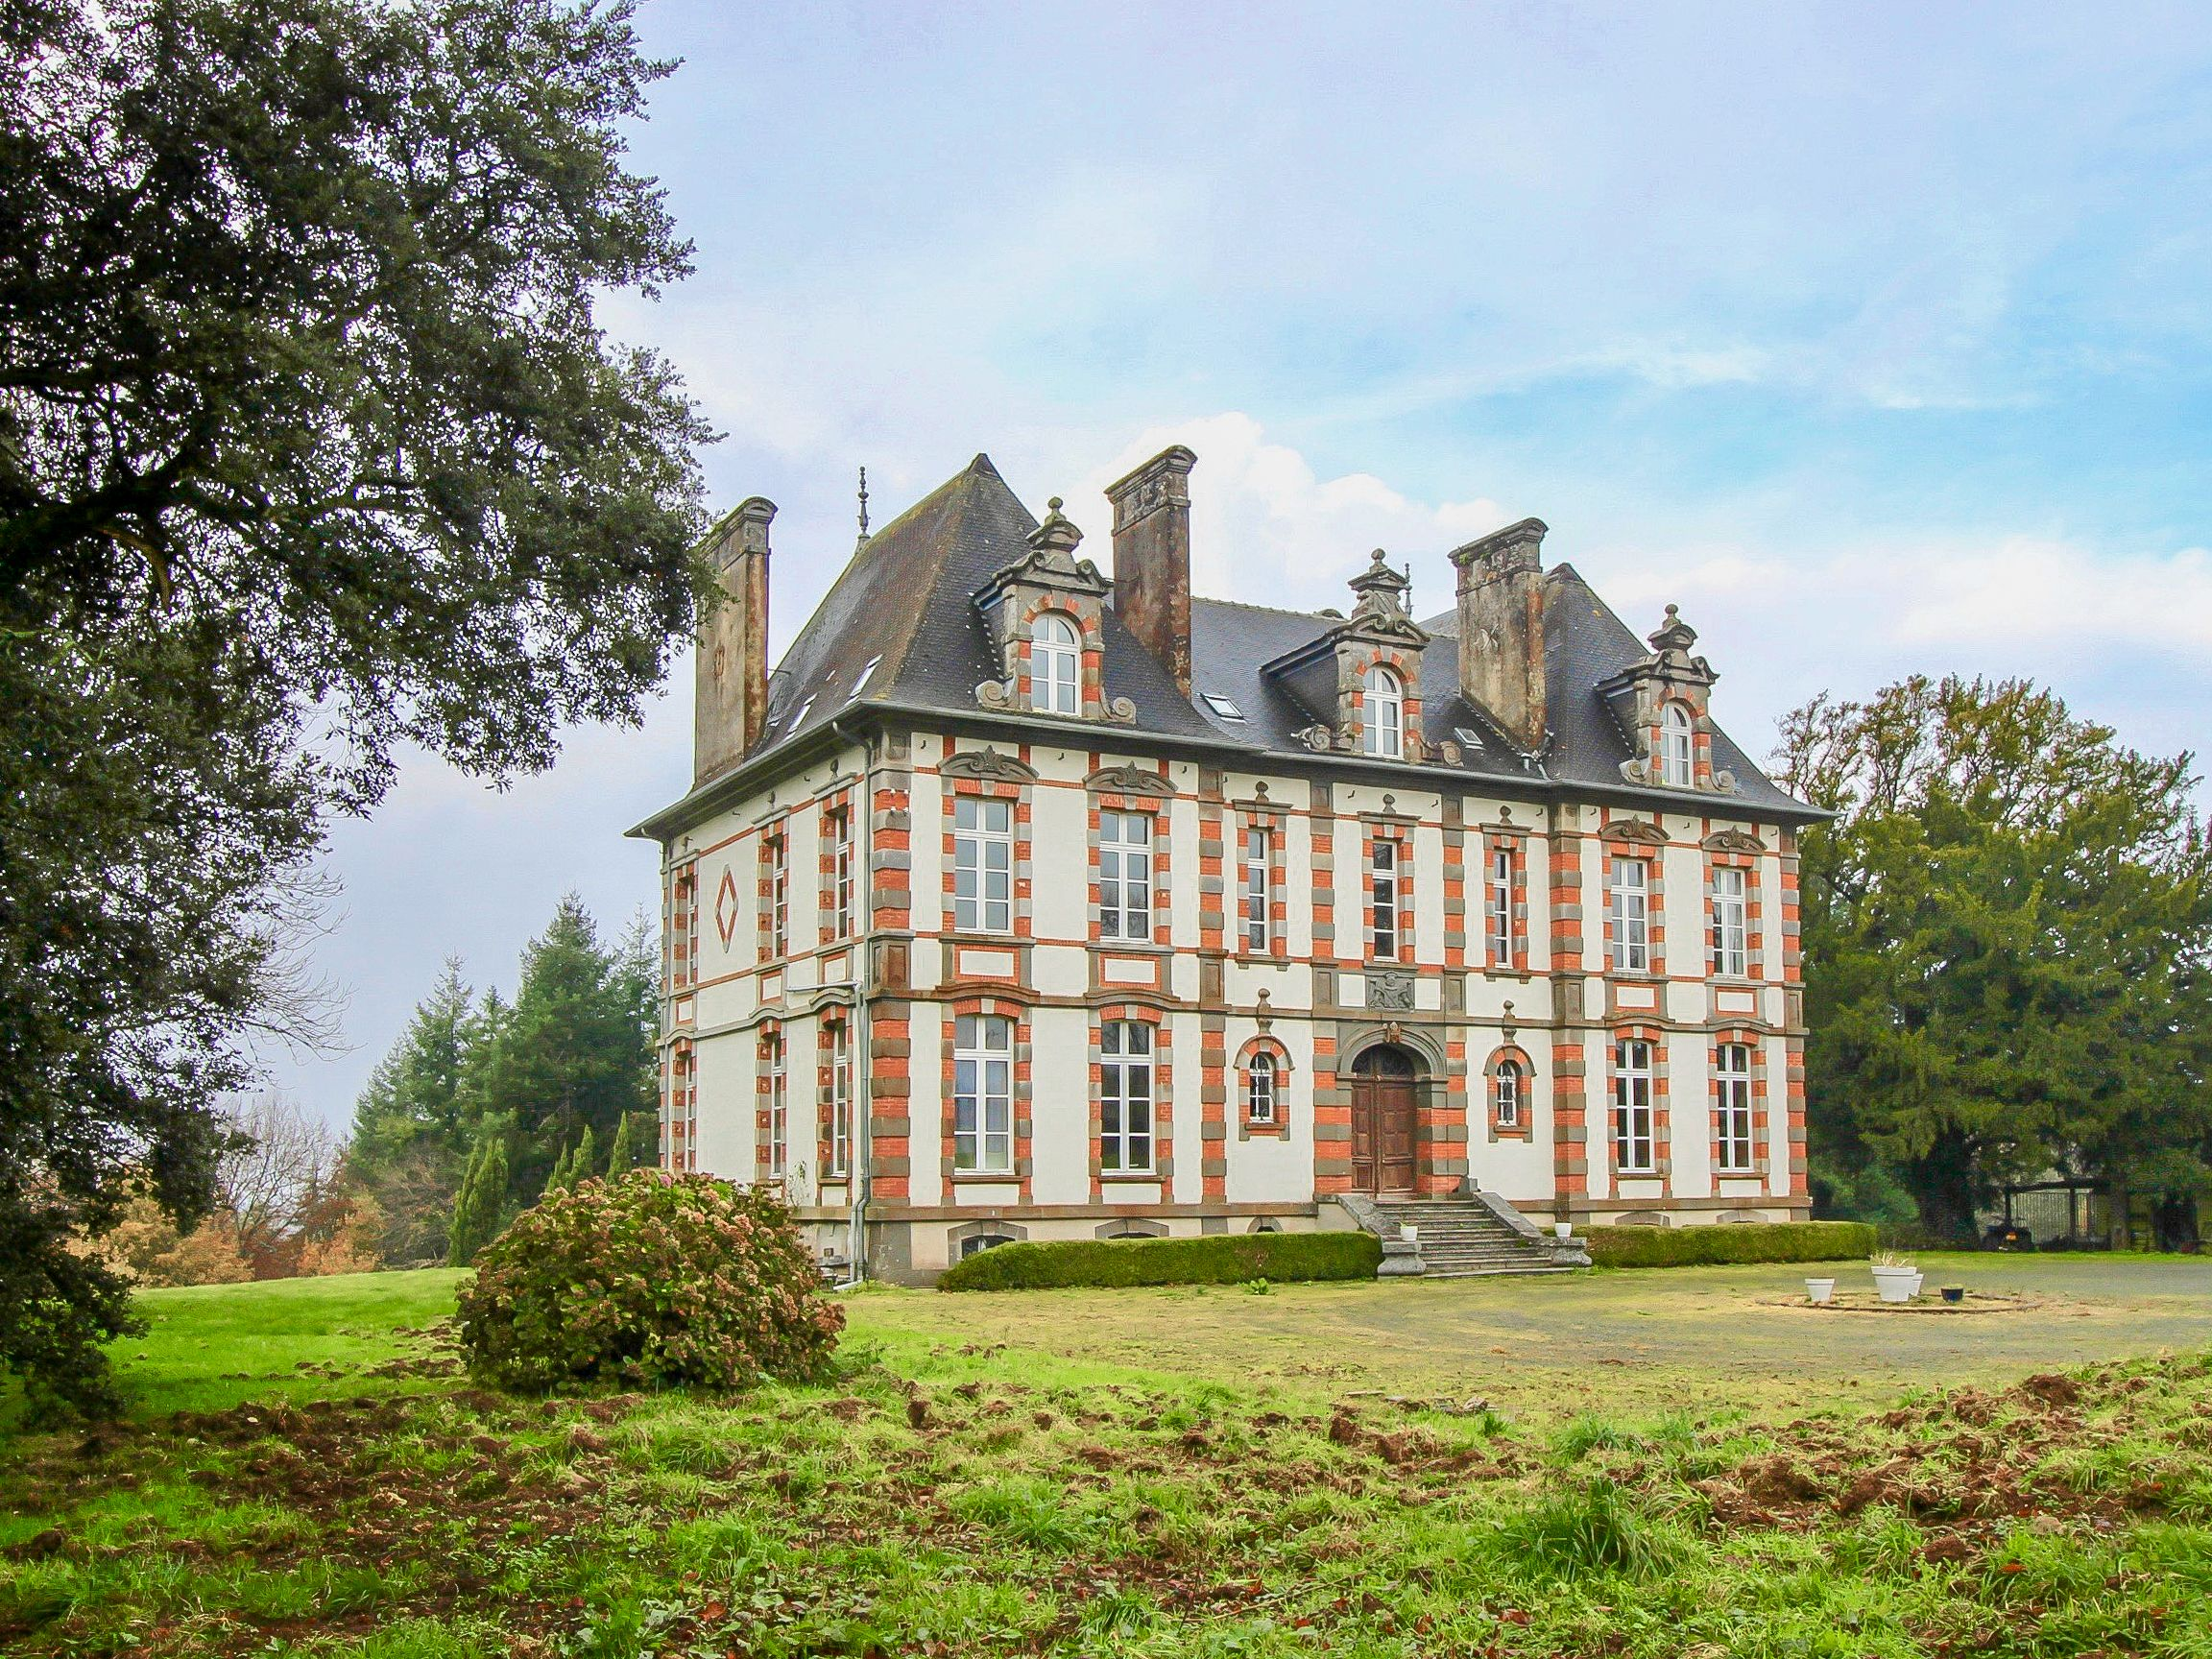 Stunning Château from the 1800's set in the countryside